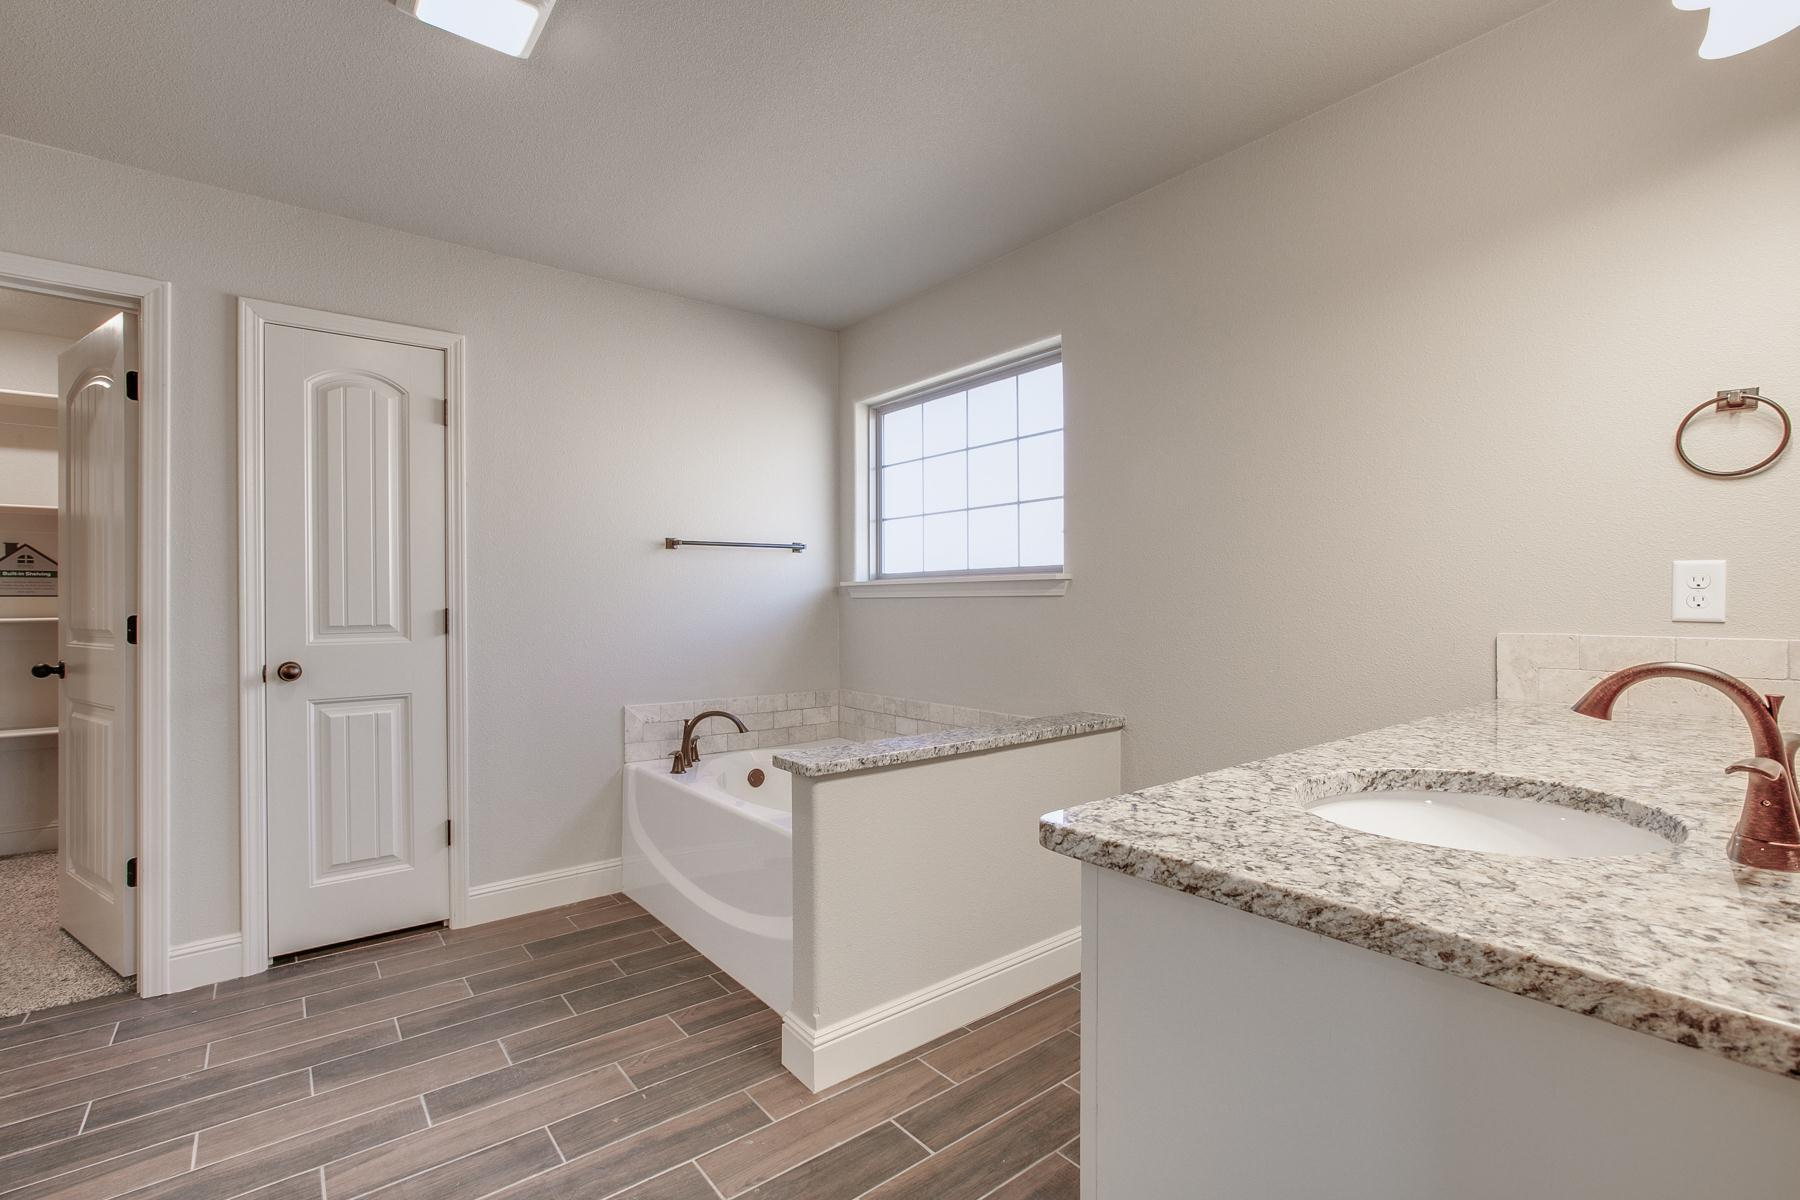 Bathroom featured in the 2300KI Series By Schuber Mitchell Homes in Fayetteville, AR